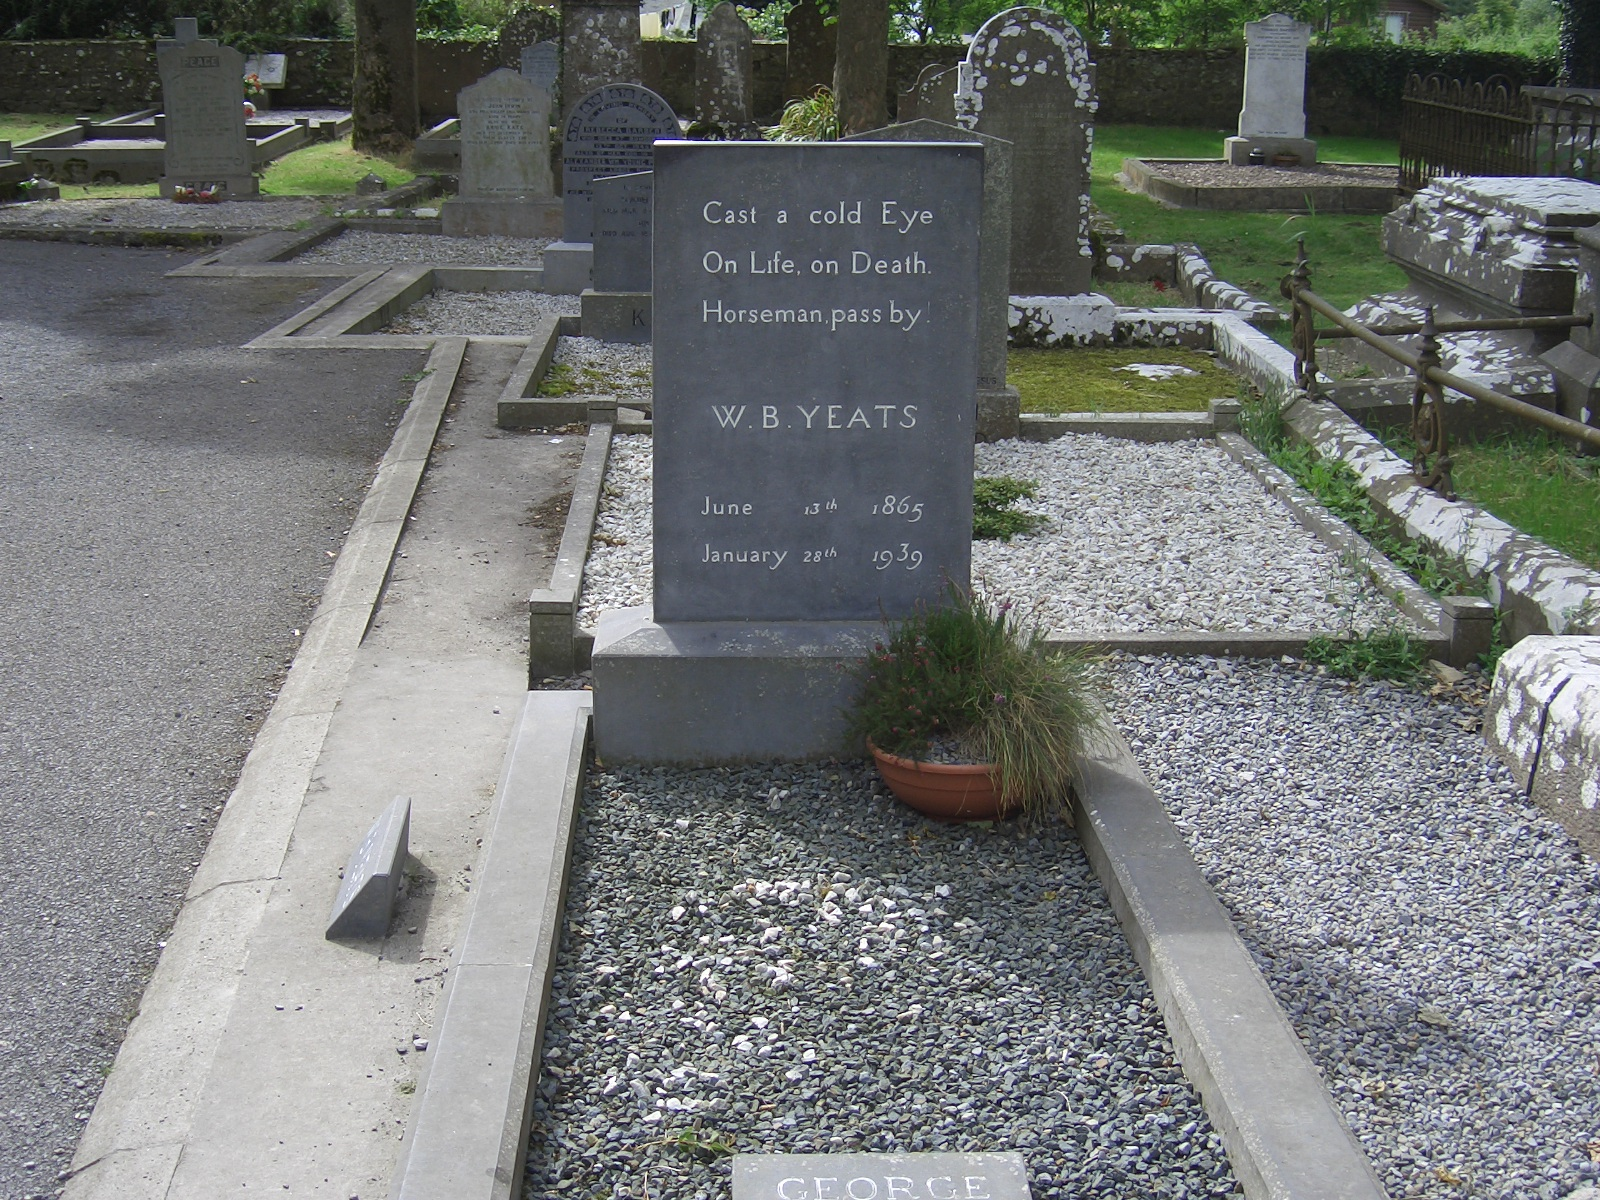 wb yeats grave